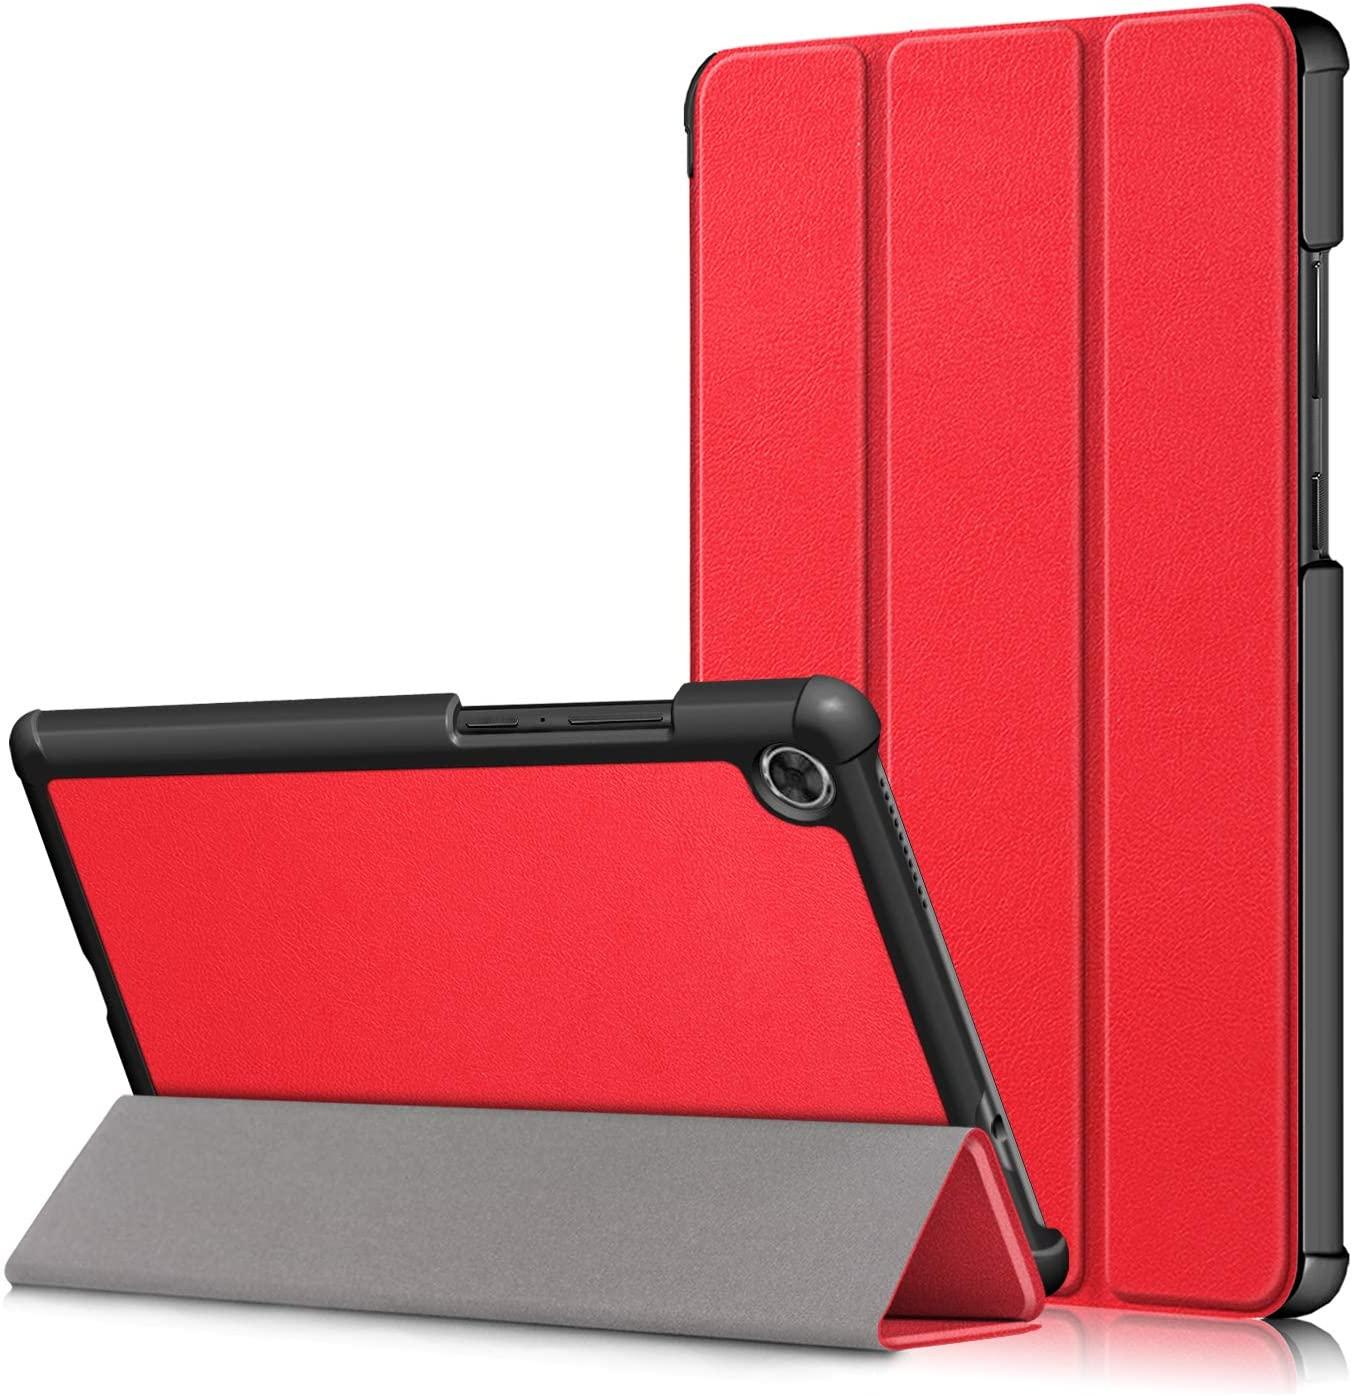 Gylint Lenovo Tab M8 TB-8505F Case, Smart Case Trifold Stand Slim Lightweight Case Cover for Lenovo Tab M8 TB-8505F / TB-8505X Tablet Red